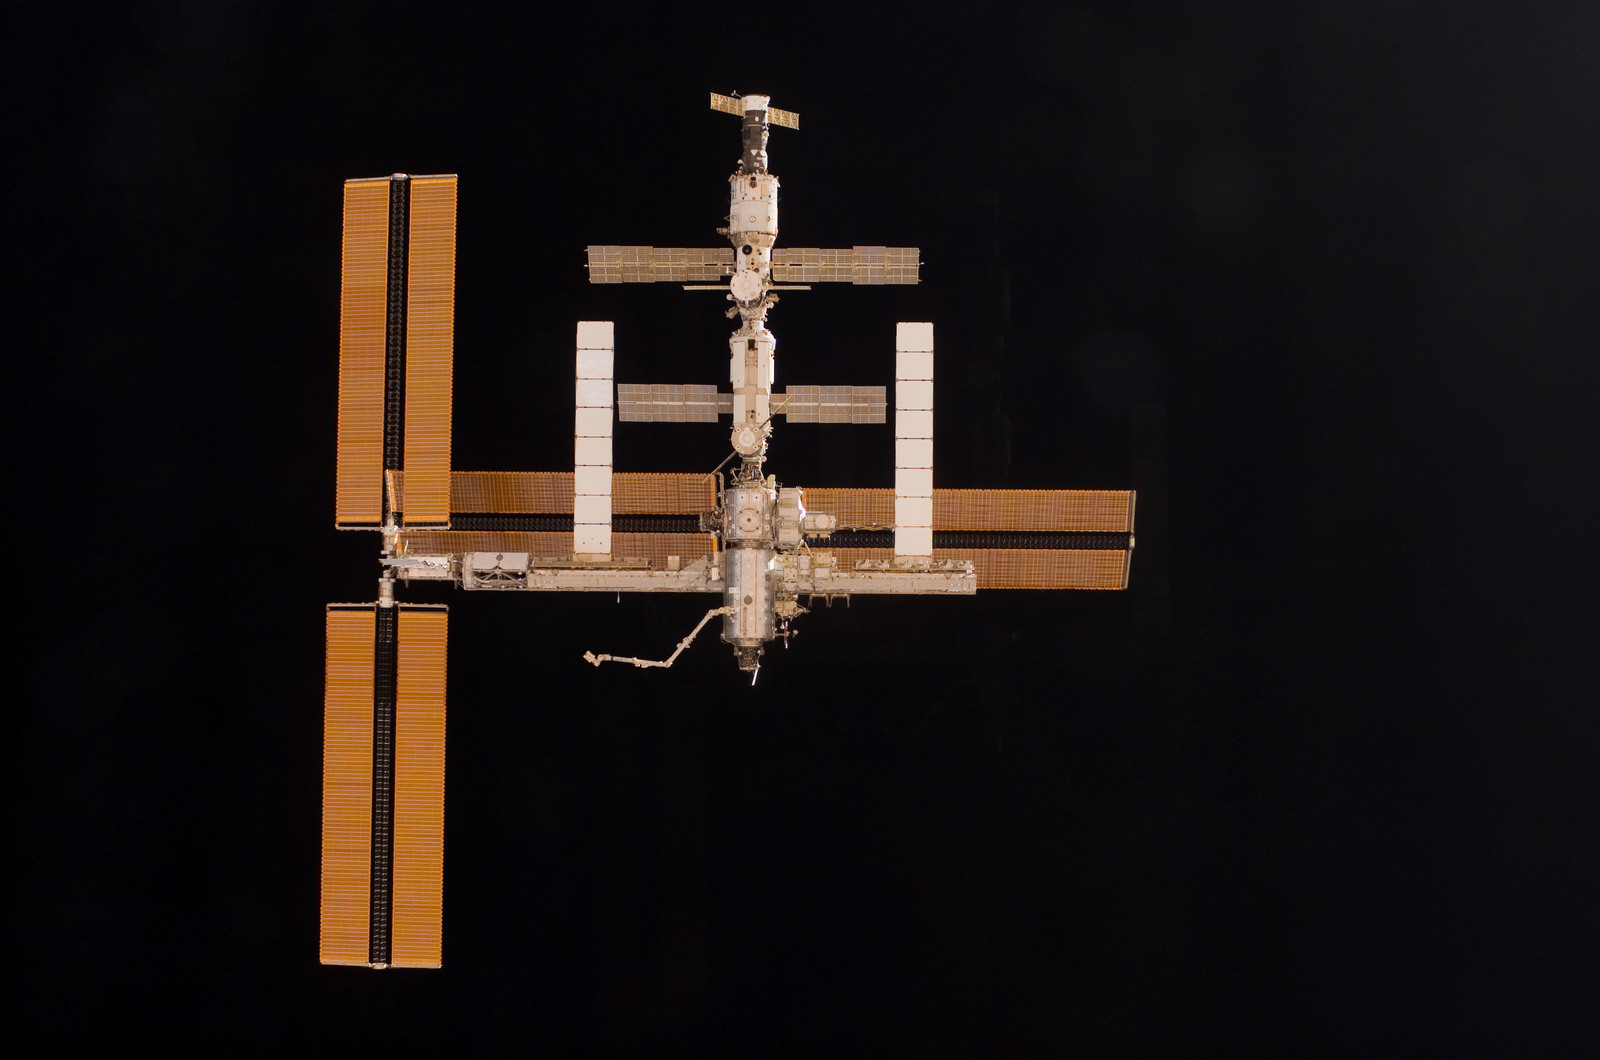 S115E06726 - STS-115 - Overall exterior view of the ISS during undocking and Flyaround Operations for STS-115 Space Shuttle Atlantis